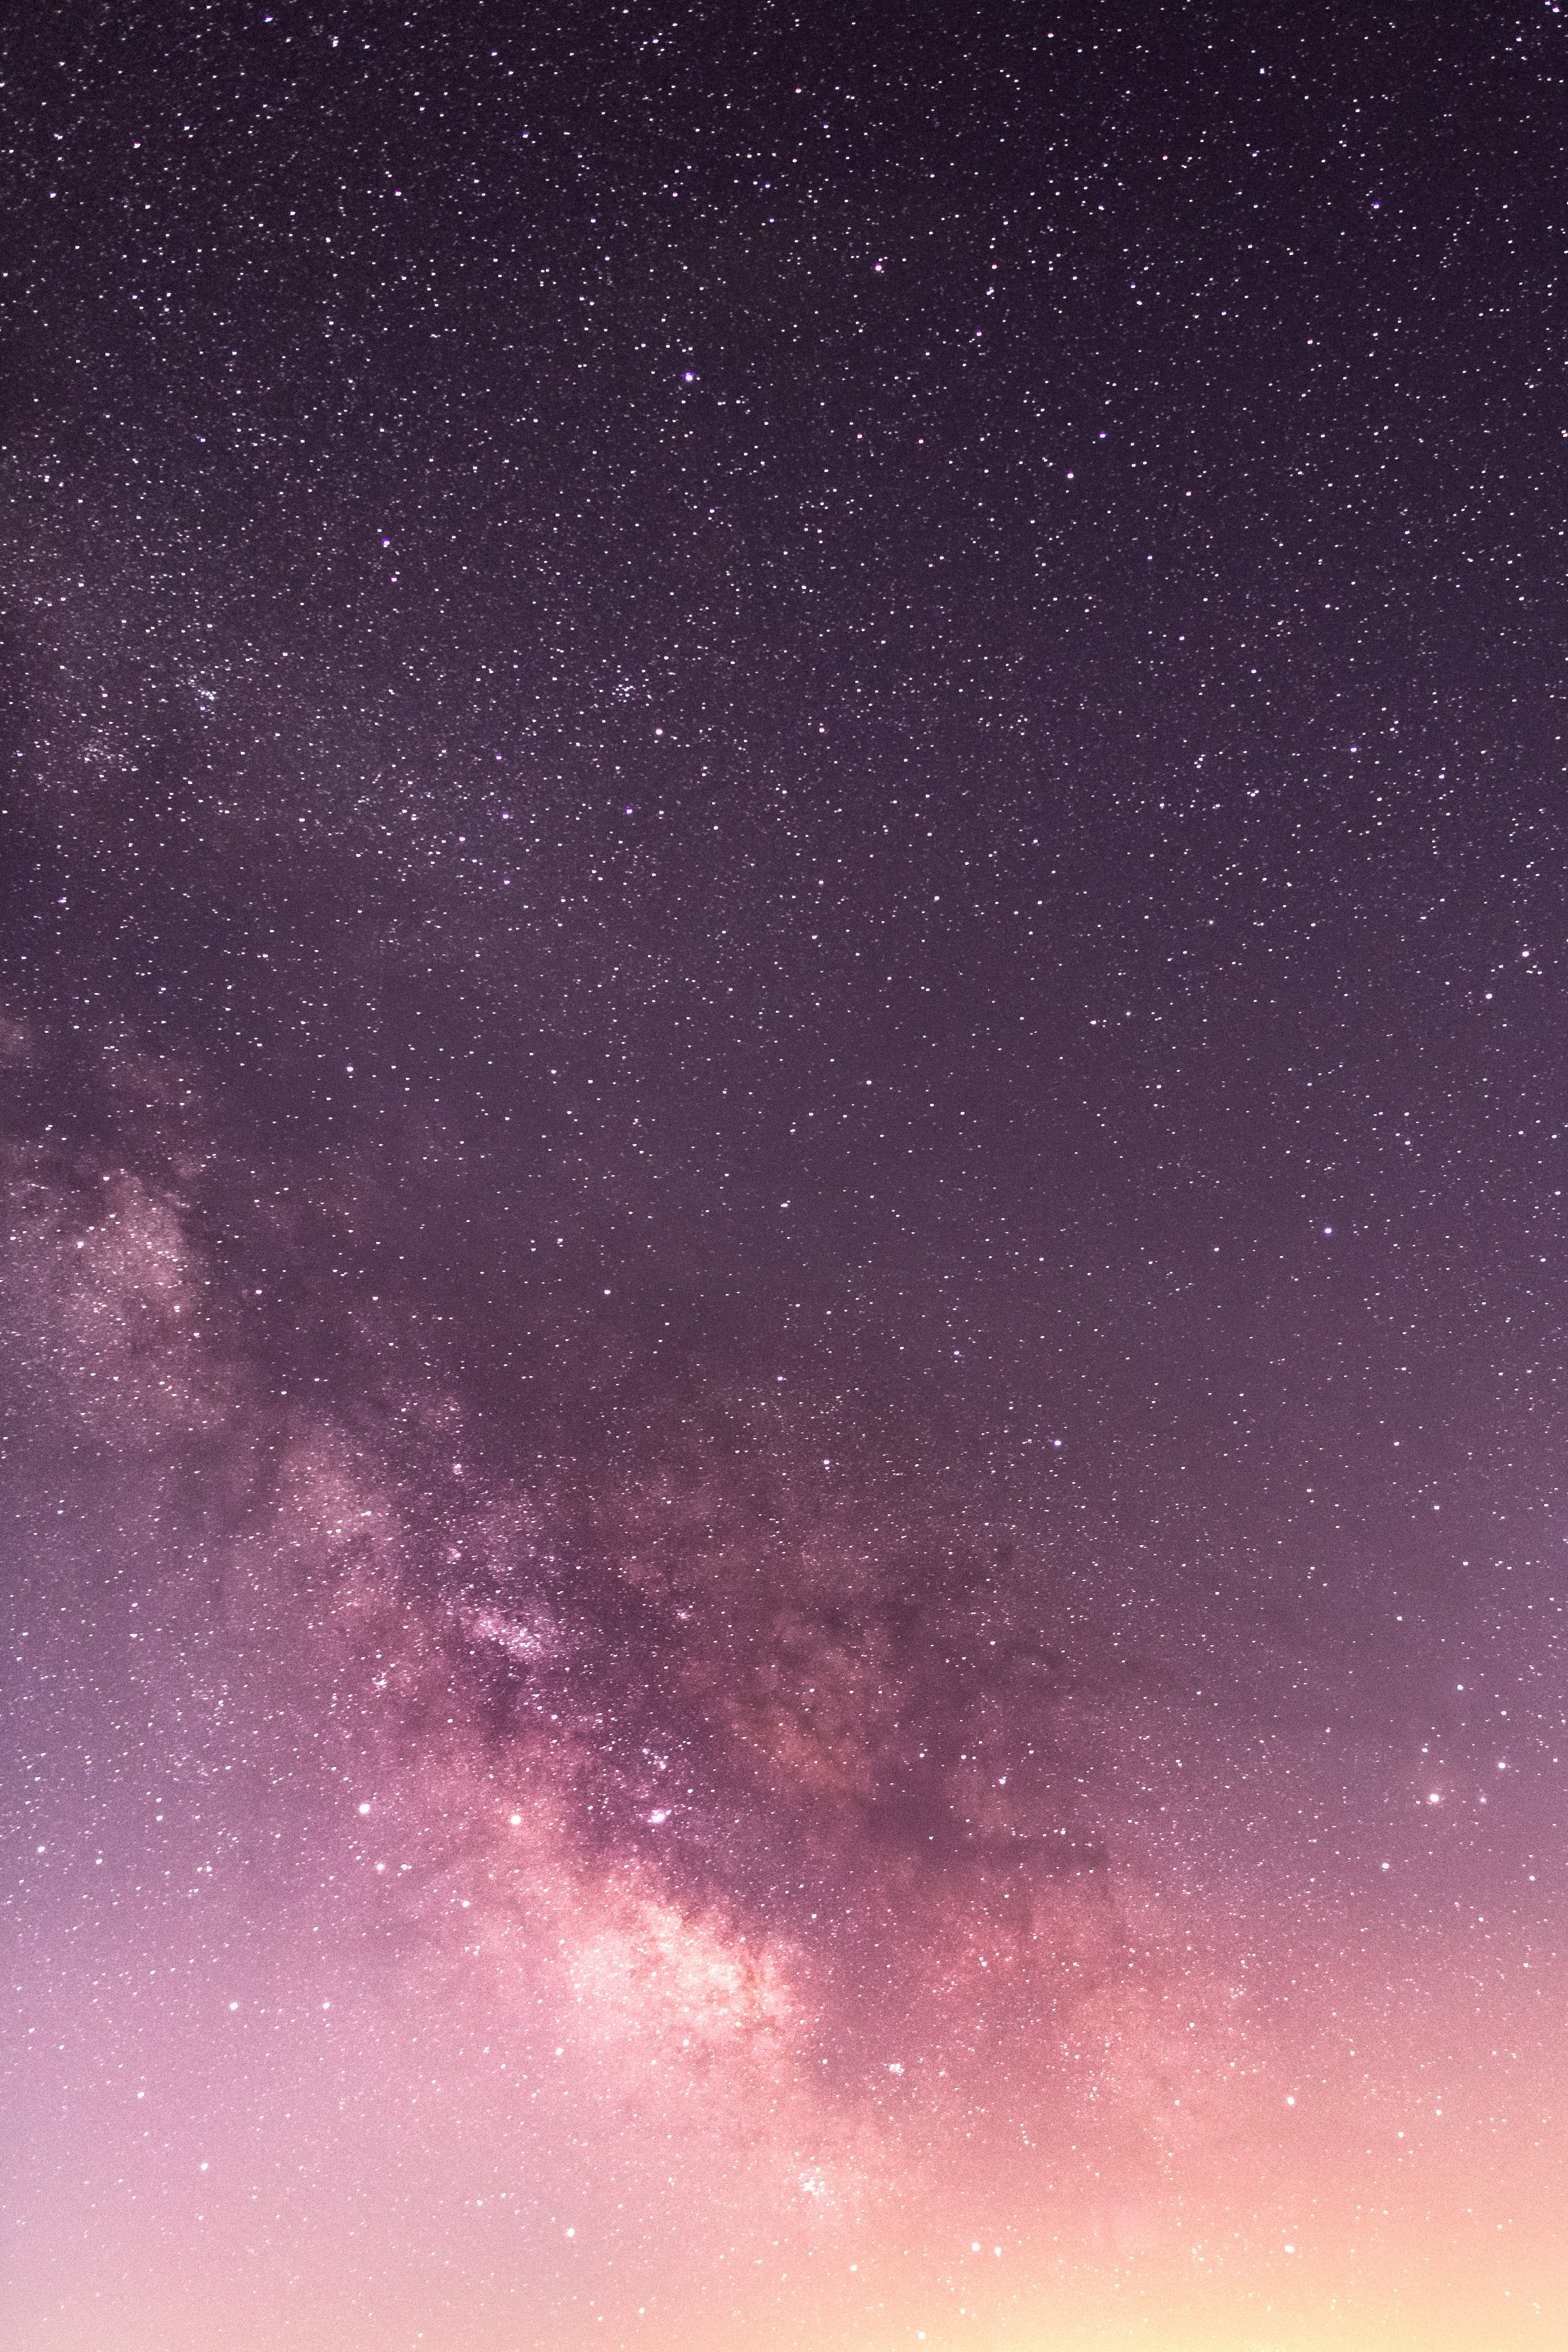 photography of stars and galaxy 183 free stock photo